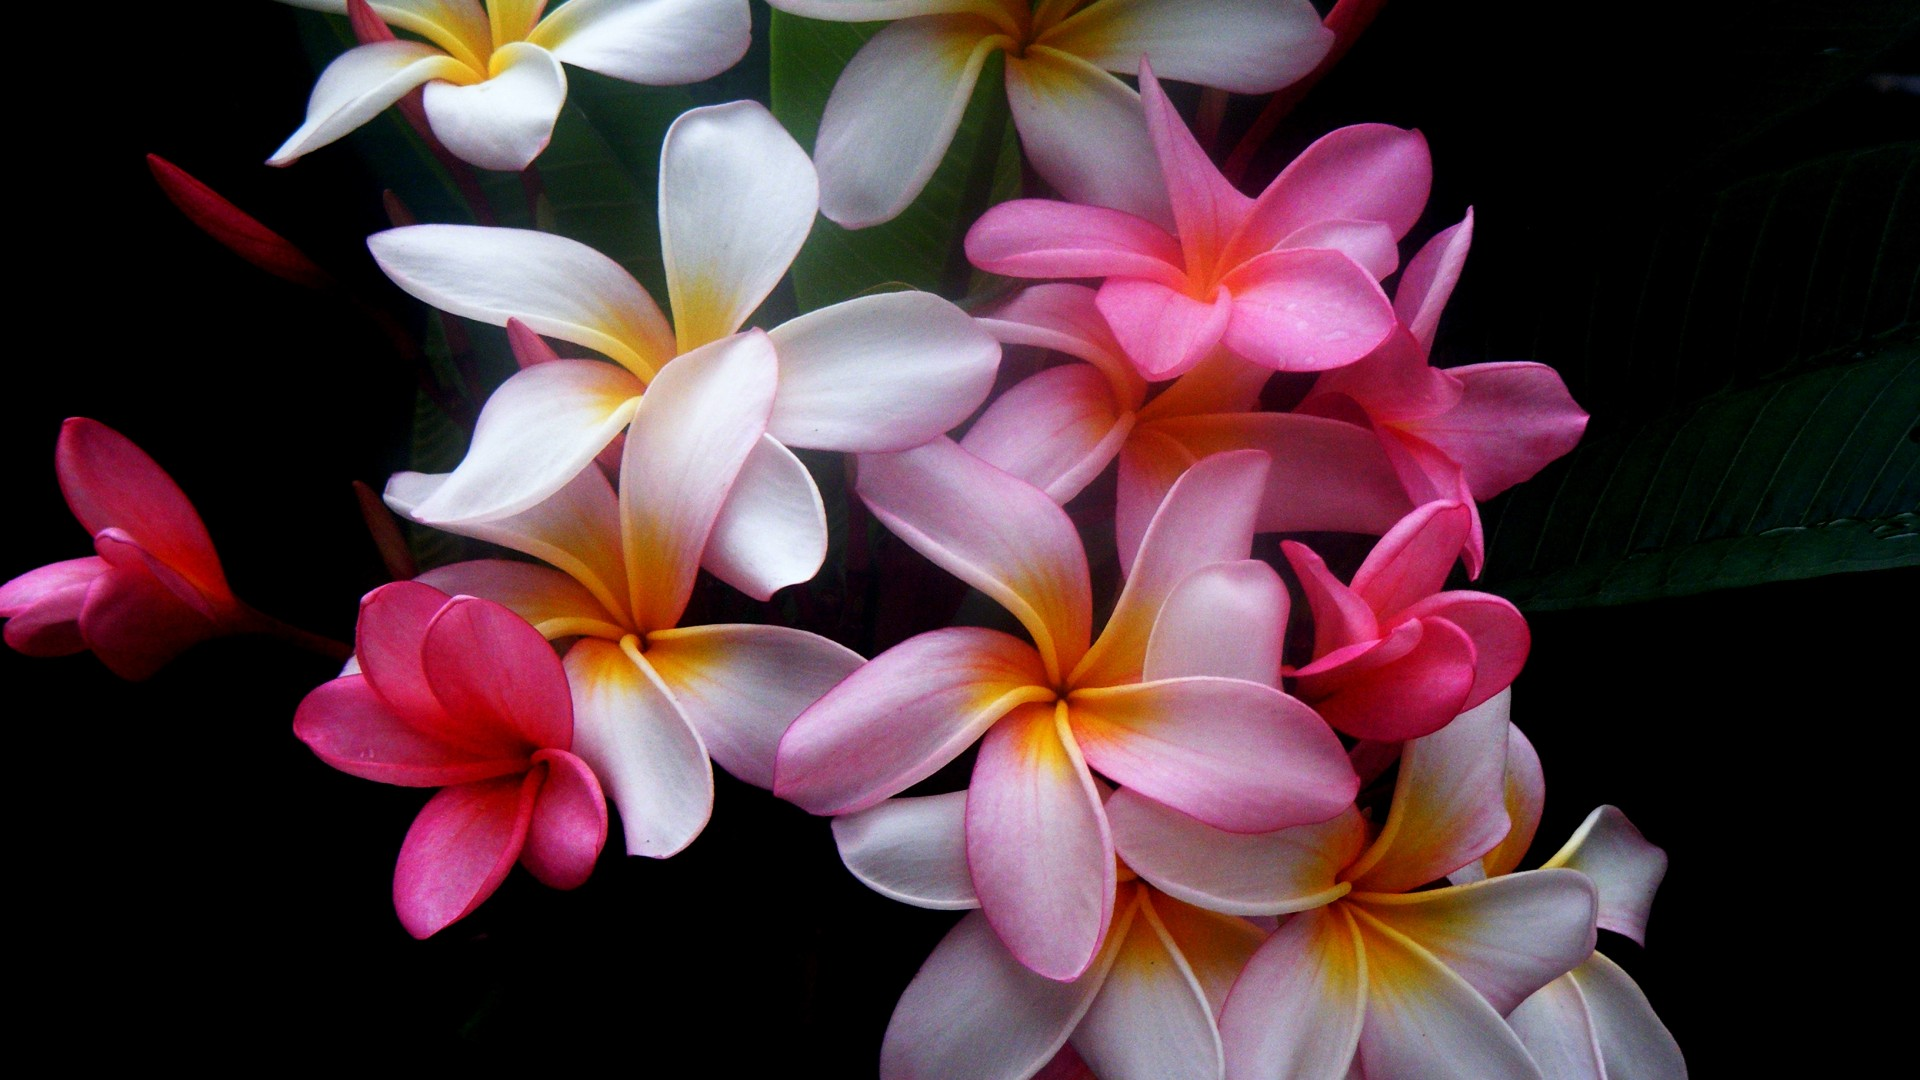 wallpaper.wiki-beautiful-flowers-pictures-1920x1080-pic-wpd0013186